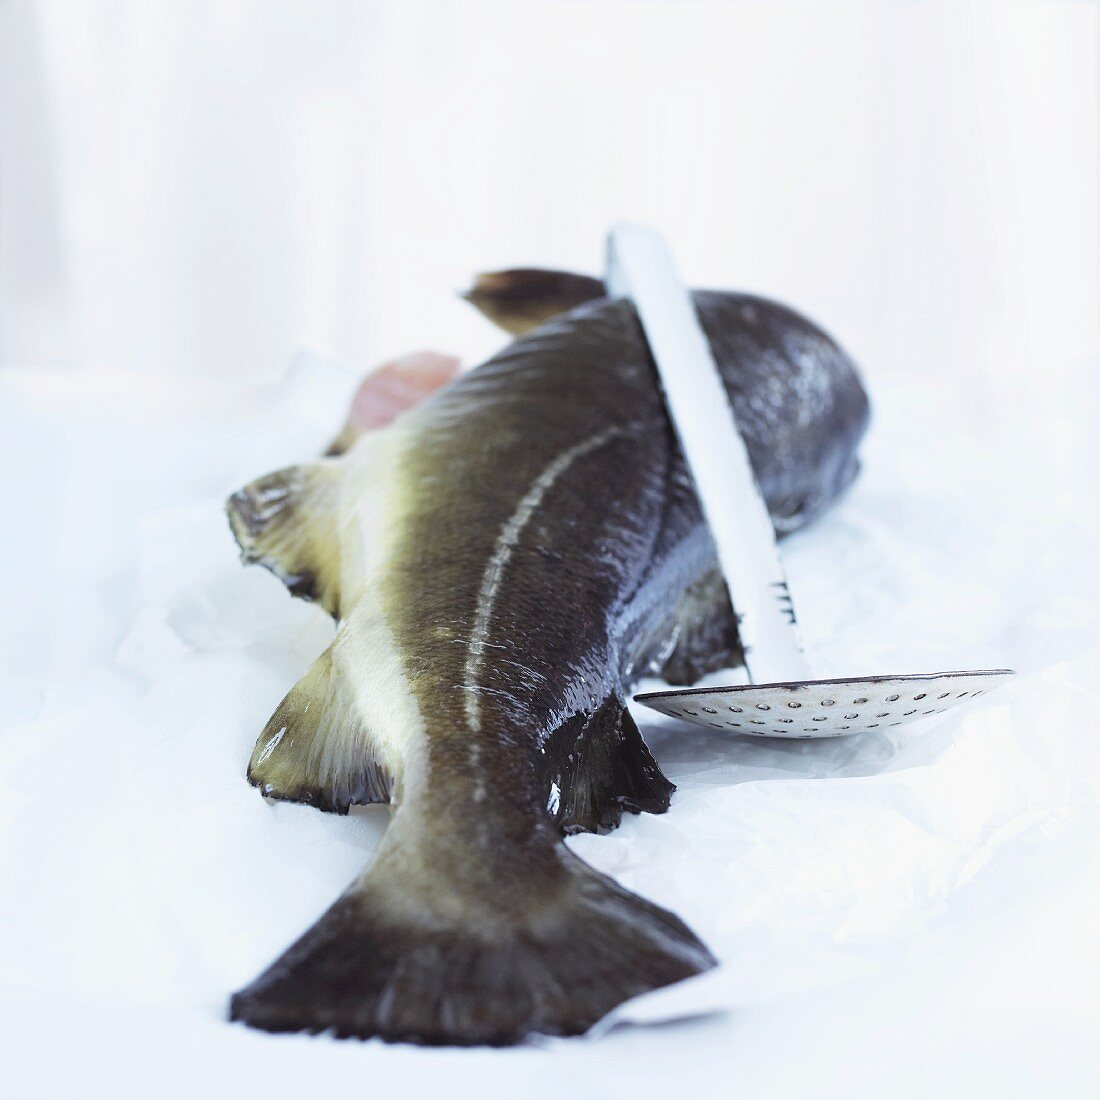 A whole cod and a draining spoon